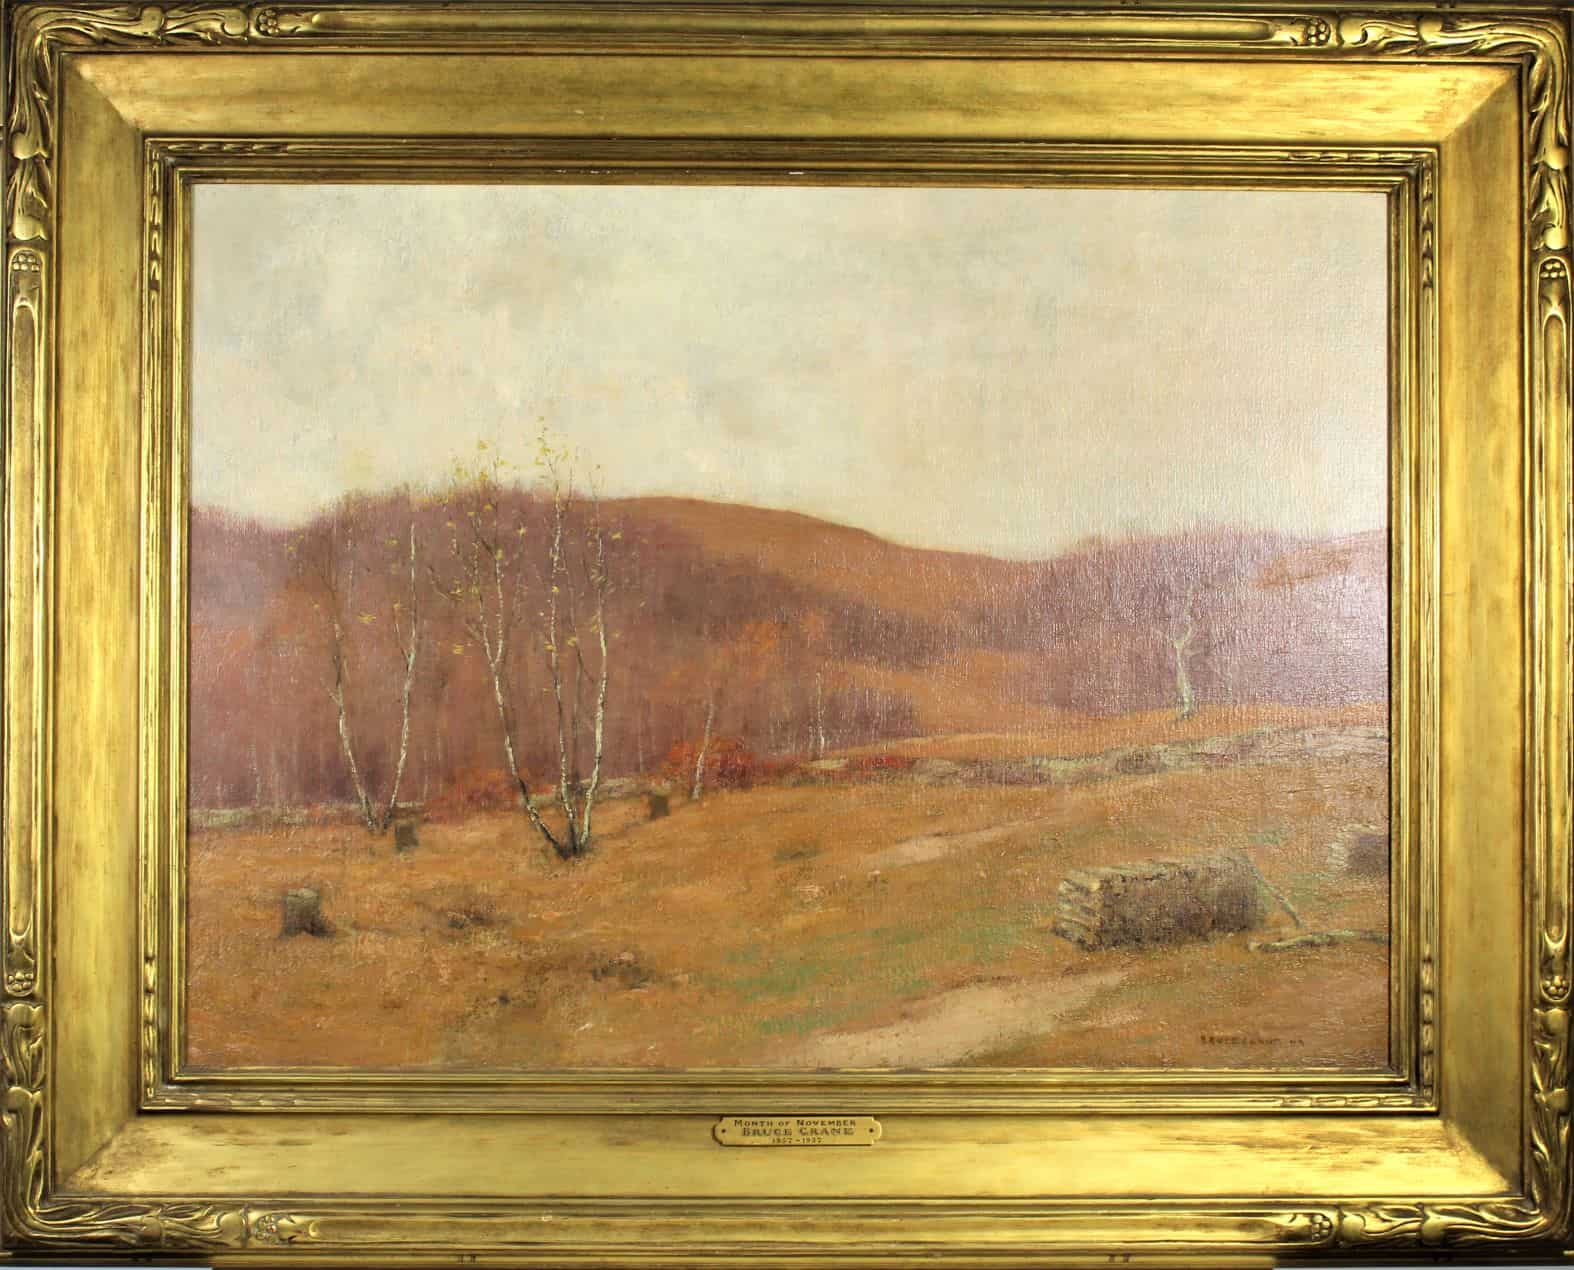 Bruce Crane (American 1857-1937) Month of November